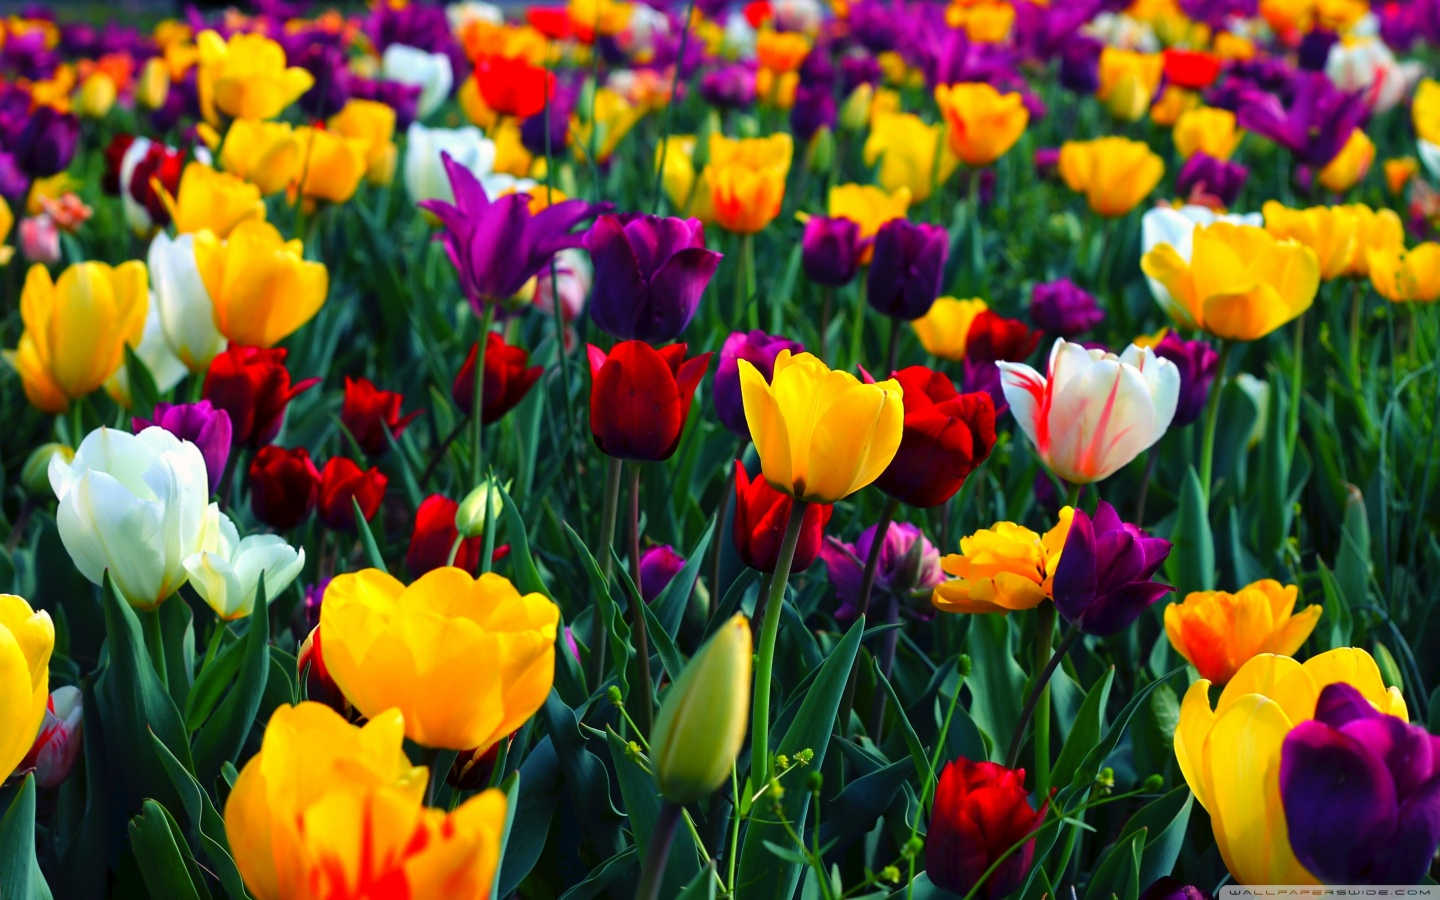 Spring Wallpapers HD download 1440x900